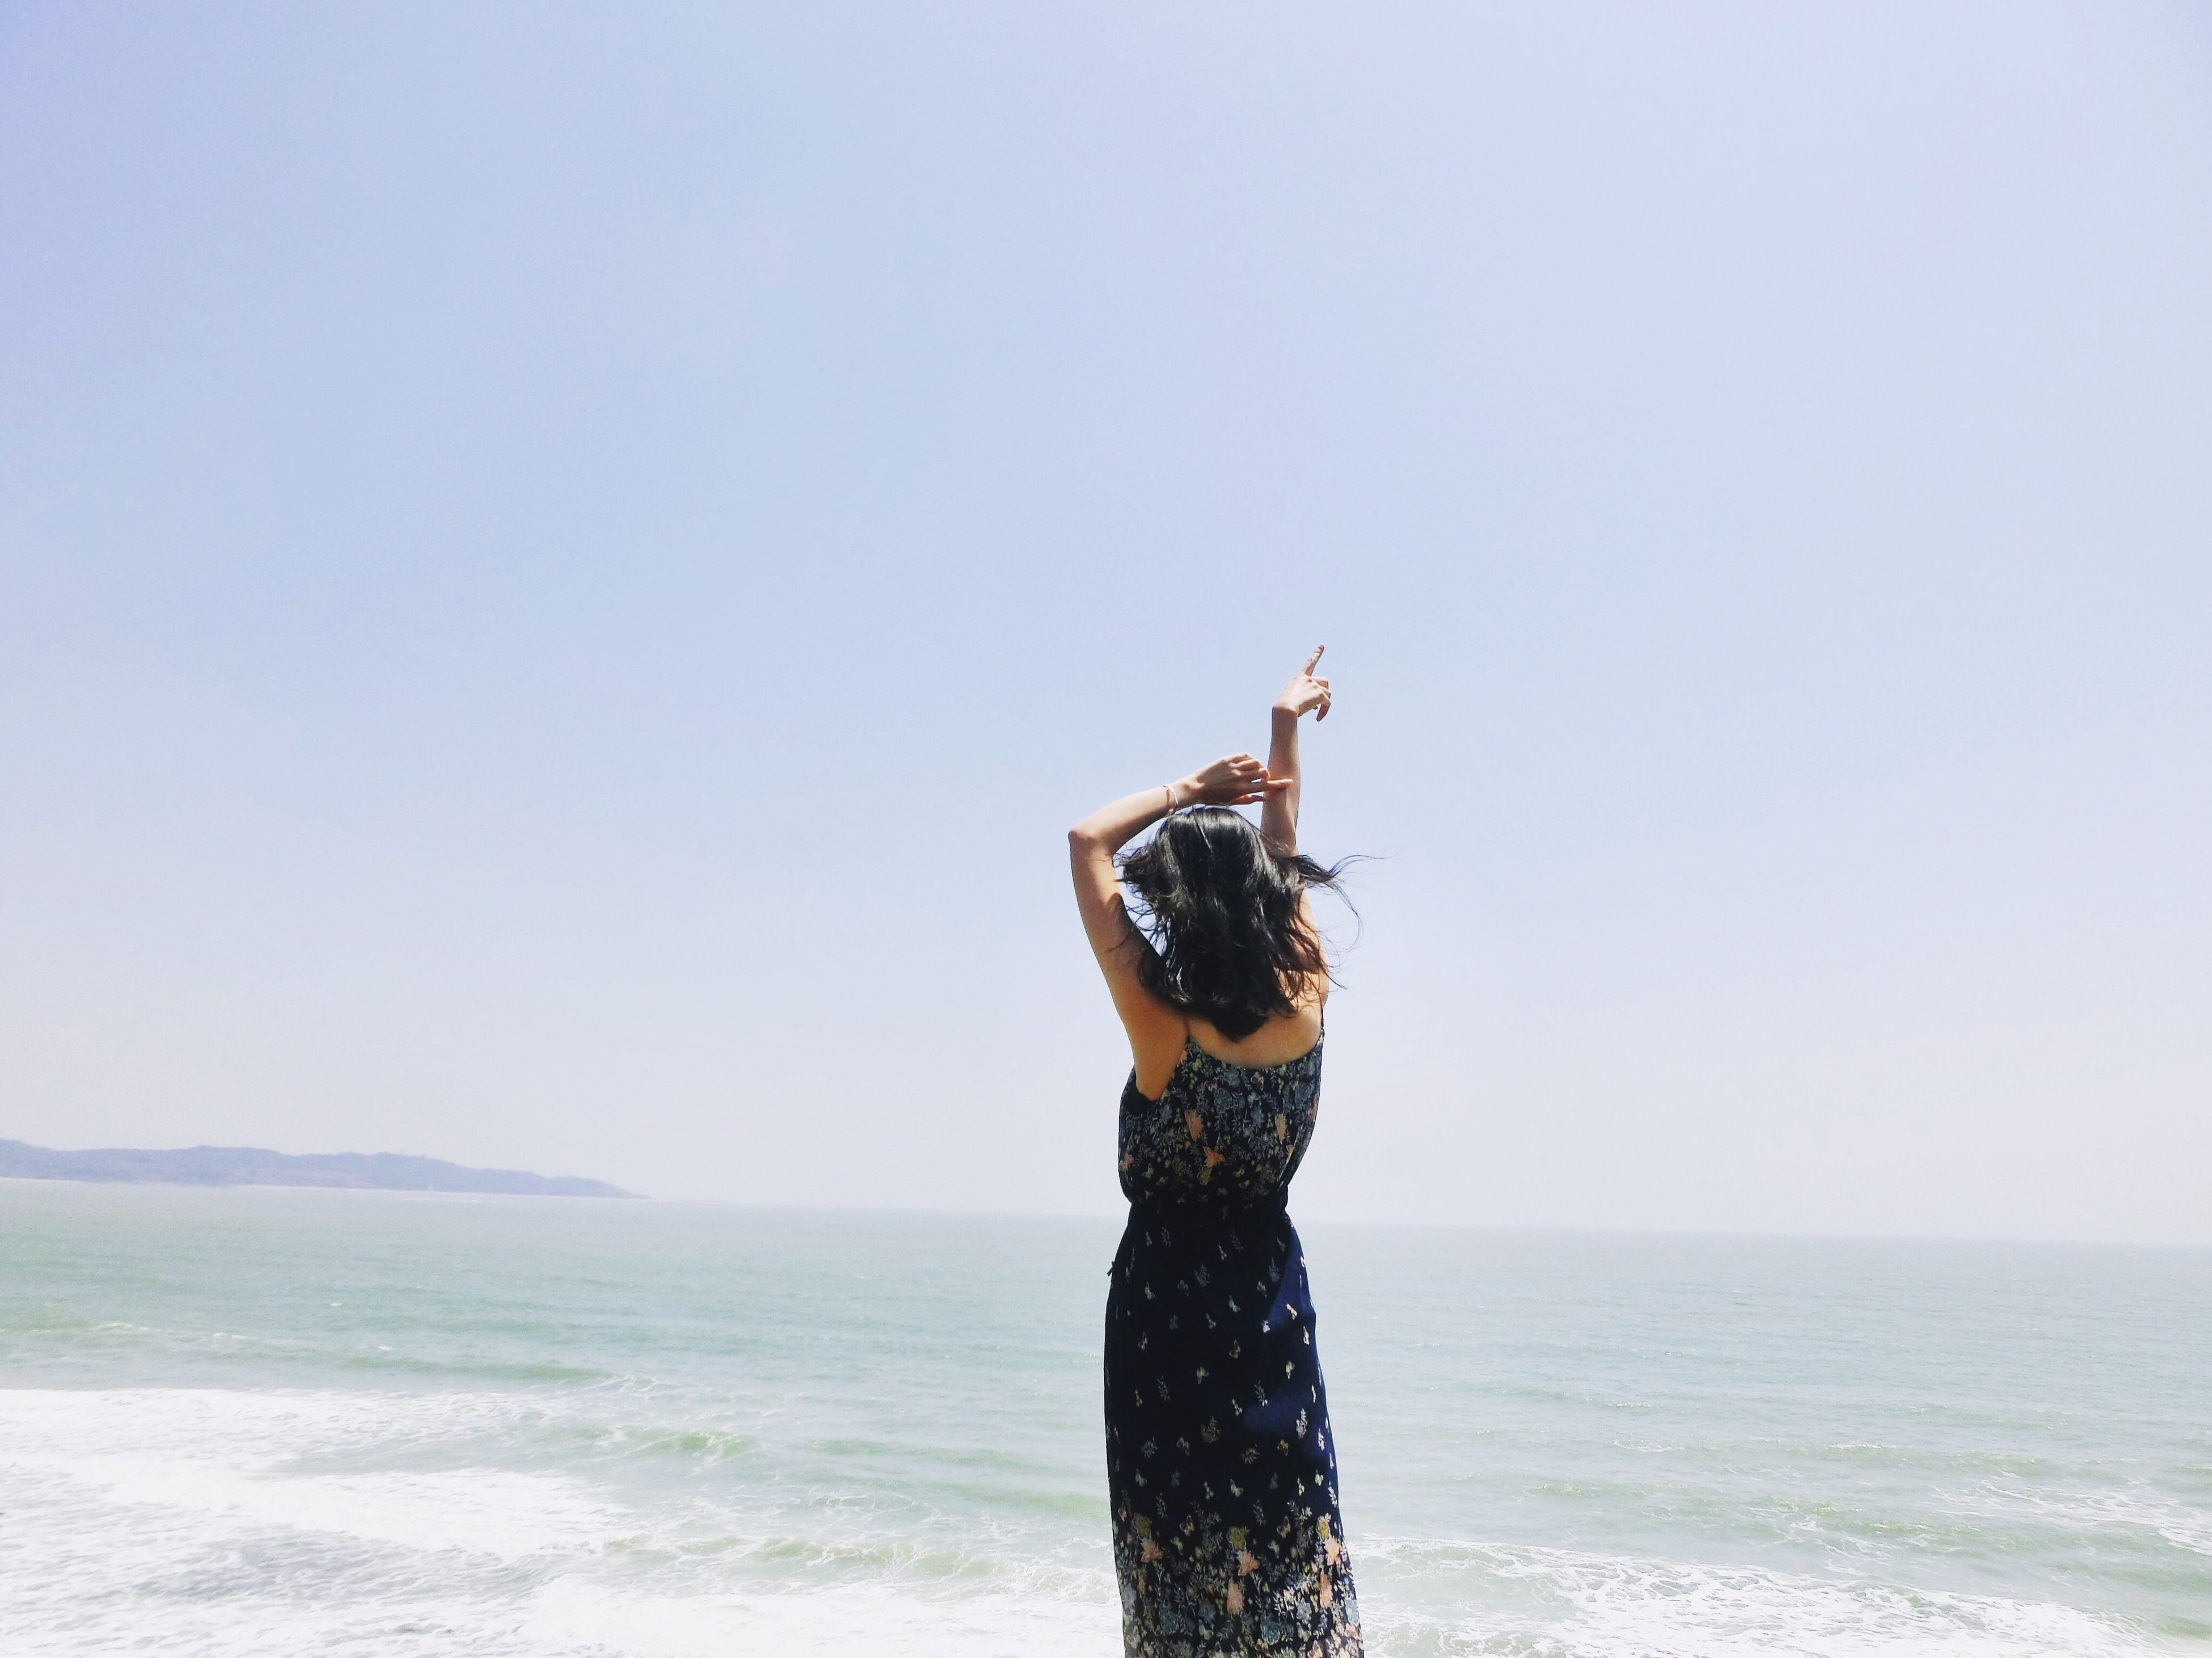 sea, horizon over water, clear sky, real people, one person, standing, arms raised, outdoors, beach, lifestyles, water, leisure activity, sky, nature, day, blue, beauty in nature, women, young adult, adult, people